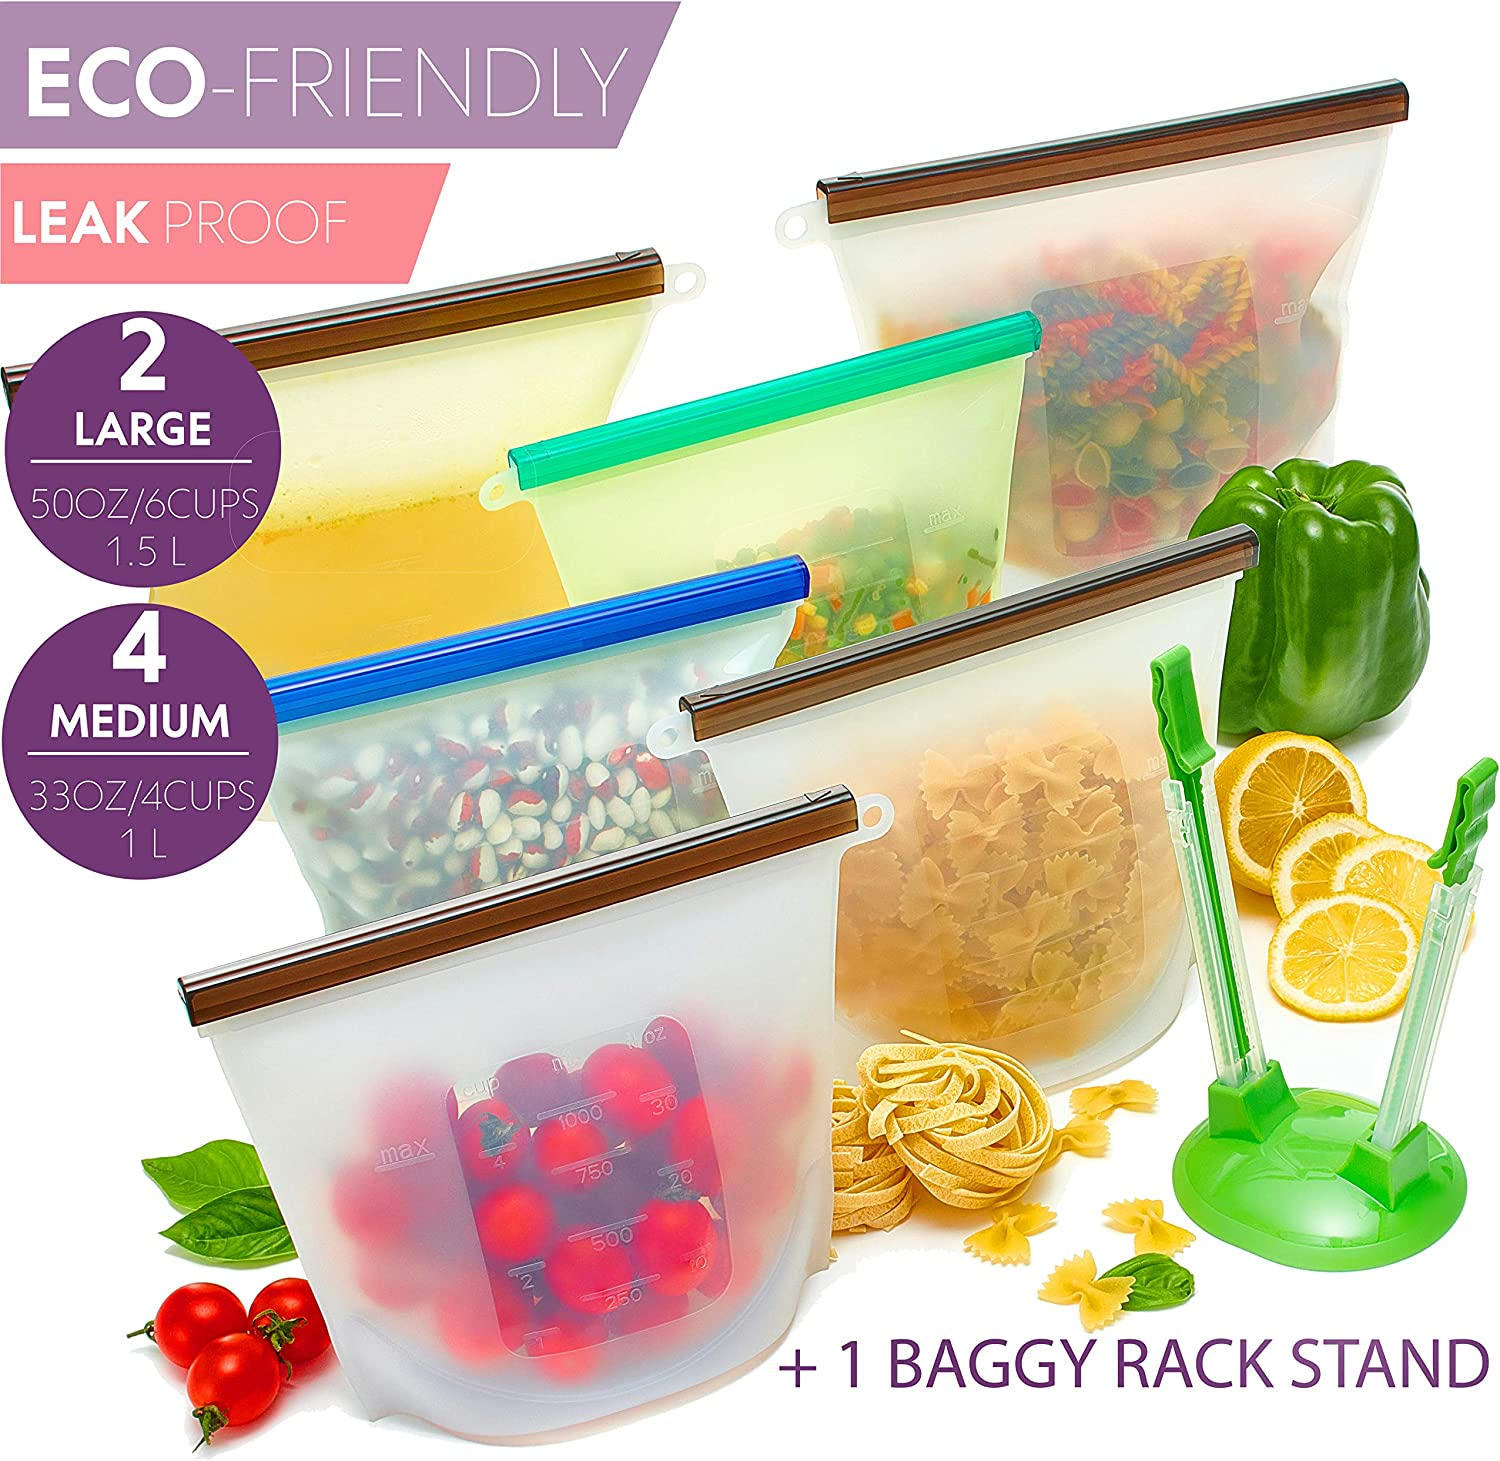 Reusable Silicone Food Ziplock Bags – Leak & Spill Proof – Eco-Friendly – Airtight Seal – Microwave & Freezer Safe – Dishwasher Washable – Large 1.5L & Medium 1L Bags with Stand – Set of 6 Clear Bags